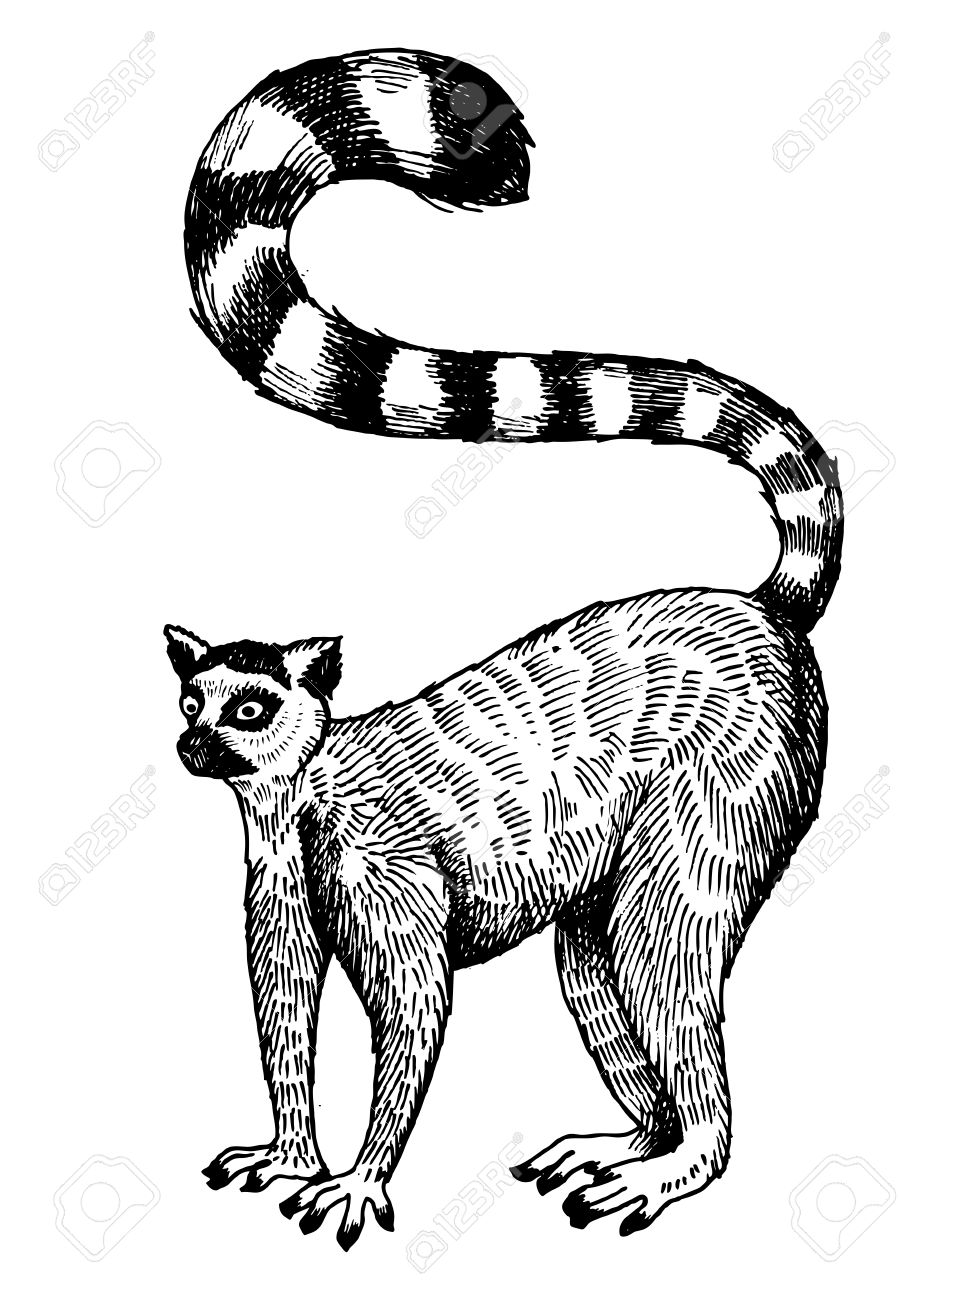 975x1300 Ring Tailed Lemur Engraving Vector Illustration. Scratch Board